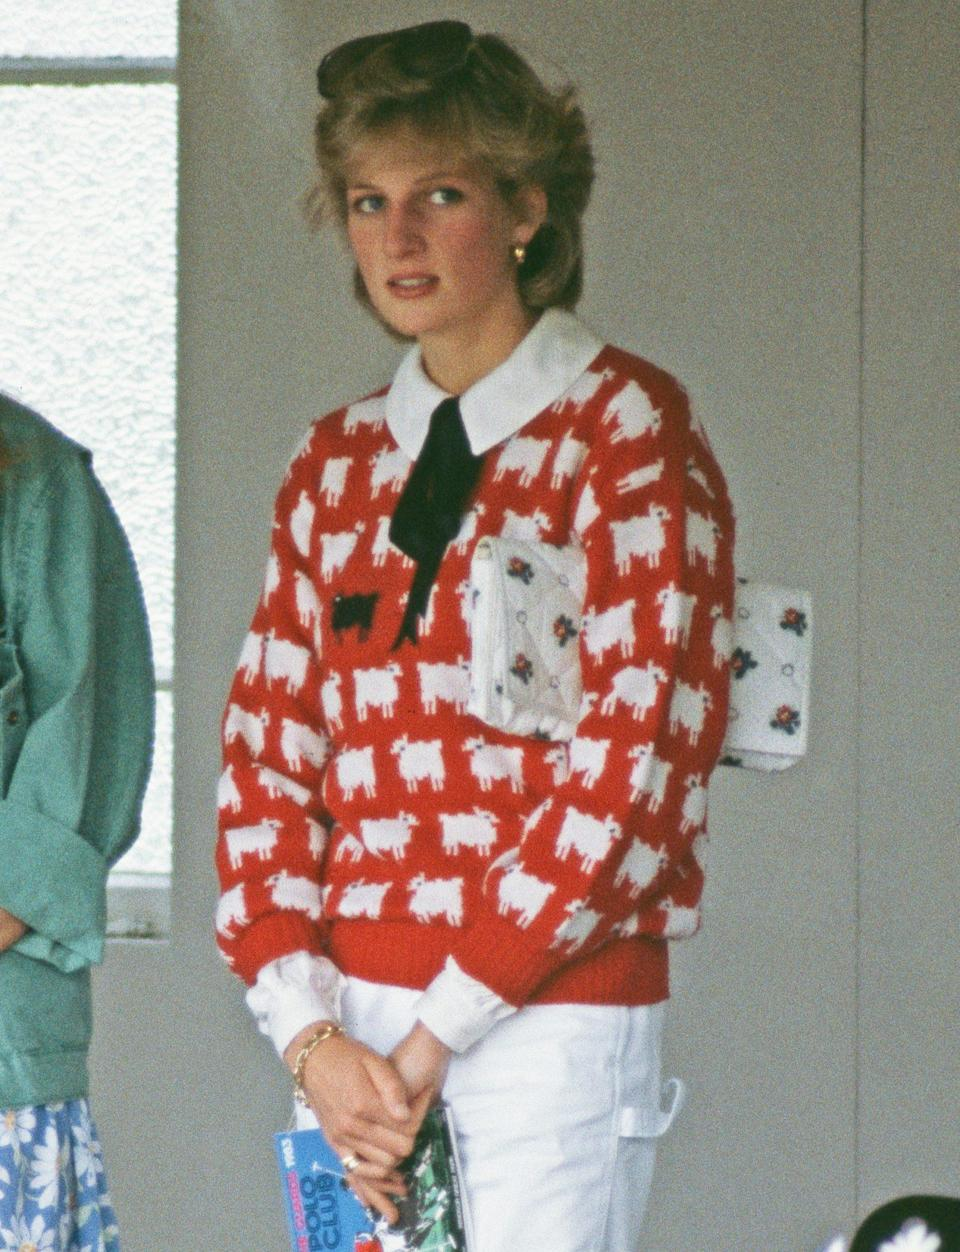 "<p>Princess Diana's <a href=""https://people.com/royals/princess-diana-black-sheep-sweater/"" rel=""nofollow noopener"" target=""_blank"" data-ylk=""slk:black sheep sweater"" class=""link rapid-noclick-resp"">black sheep sweater</a>, which she wore to two polo matches in the 1980s, sent a clear message of how she felt as part of the royal family. (And now the sweater is making a <a href=""https://people.com/royals/princess-diana-sweaters-comeback-rowing-blazers/"" rel=""nofollow noopener"" target=""_blank"" data-ylk=""slk:comeback"" class=""link rapid-noclick-resp"">comeback</a> for the new generation!)</p>"